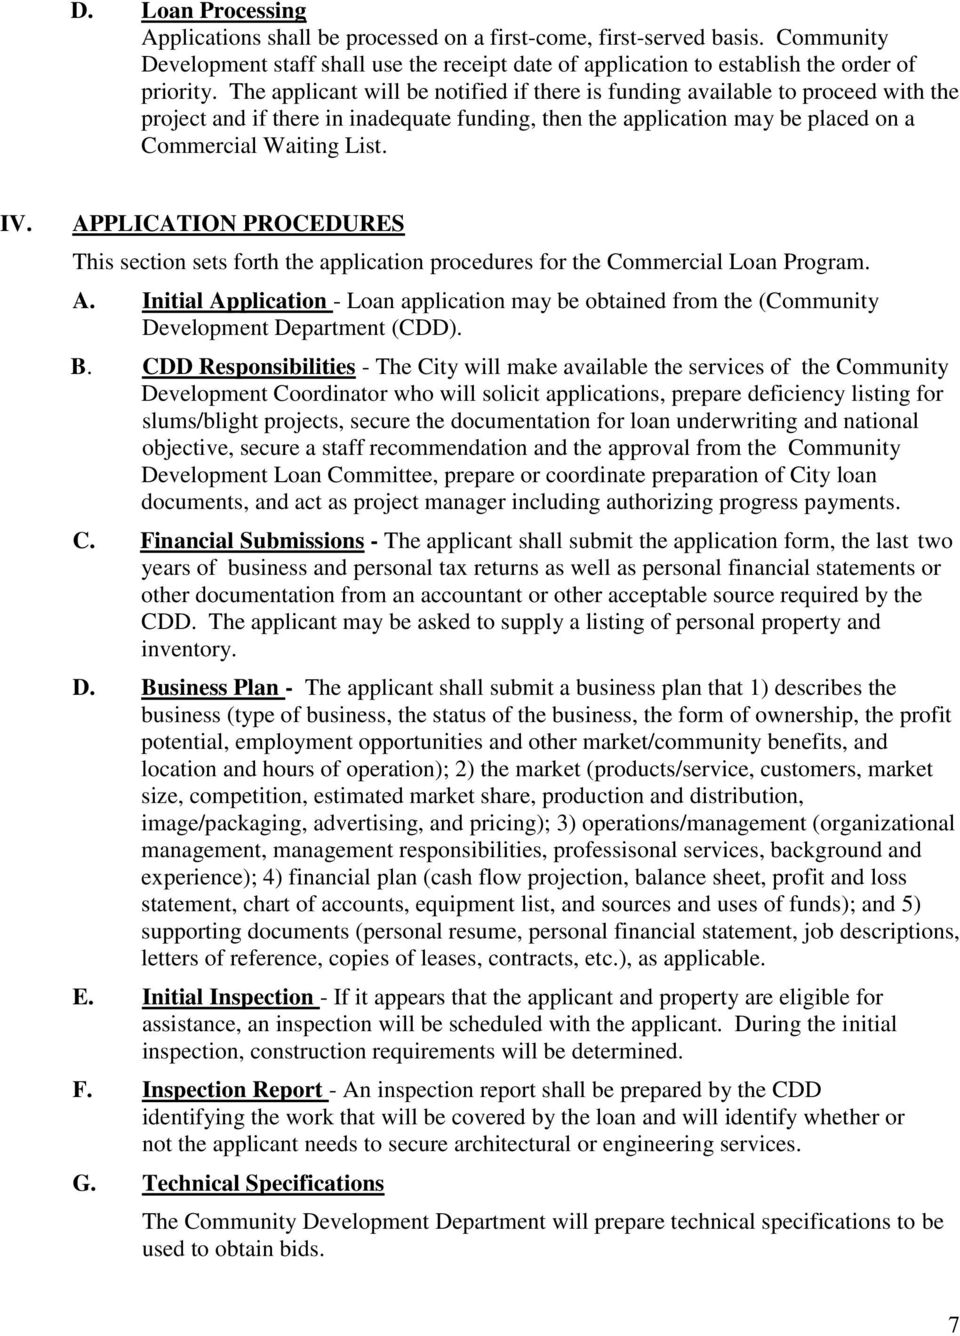 APPLICATION PROCEDURES This section sets forth the application procedures for the Commercial Loan Program. A.